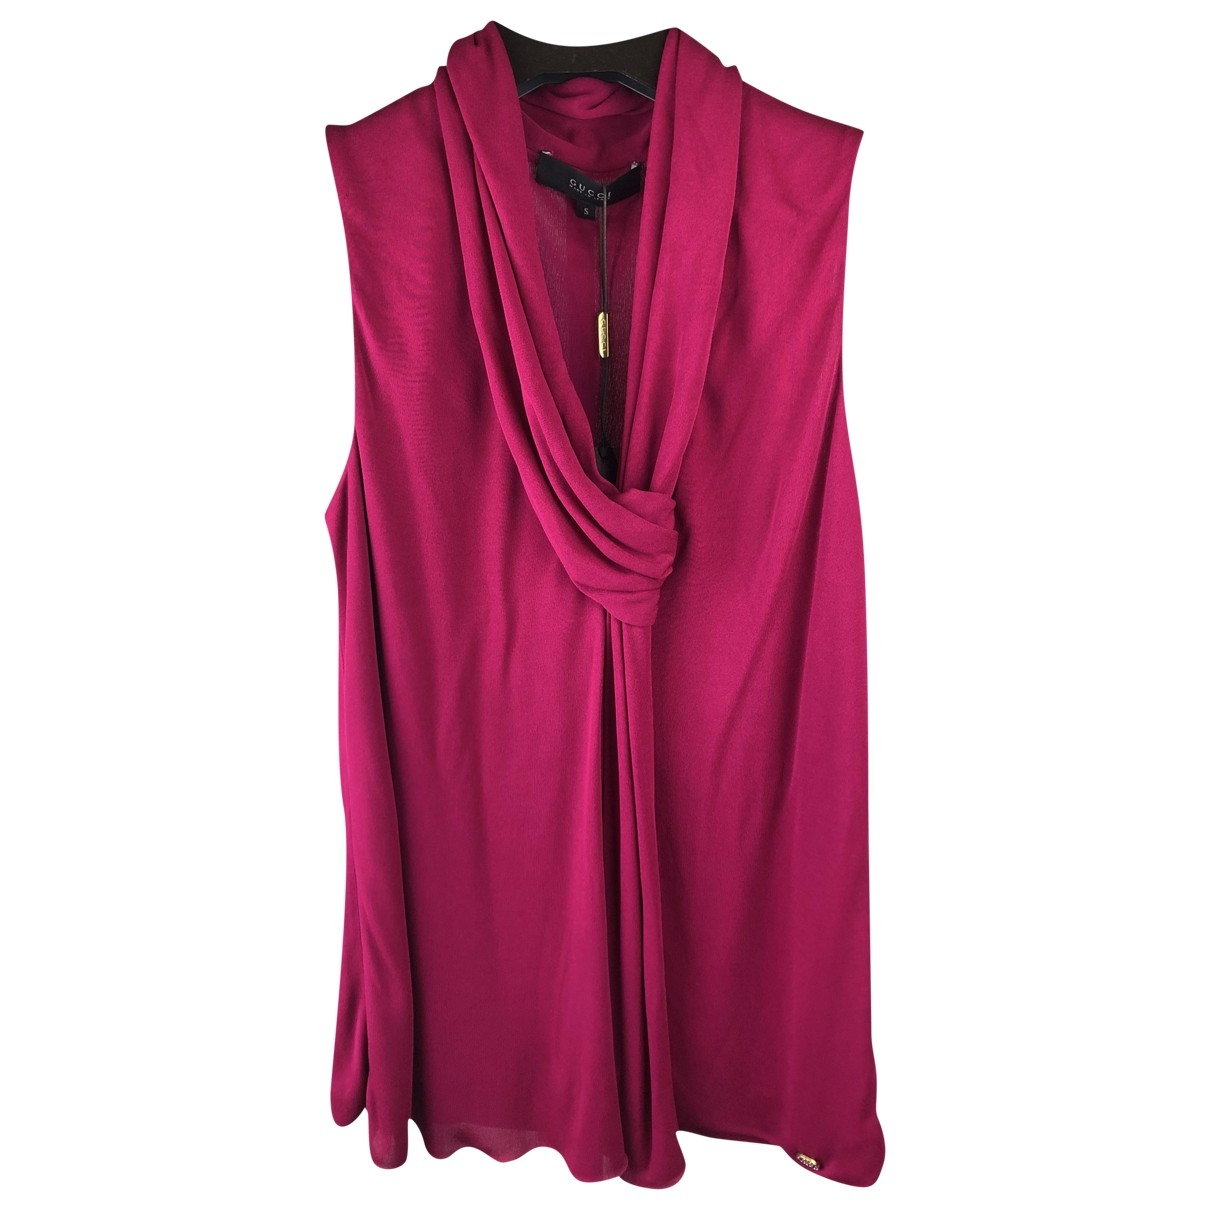 Gucci \N Pink  top for Women 40 IT